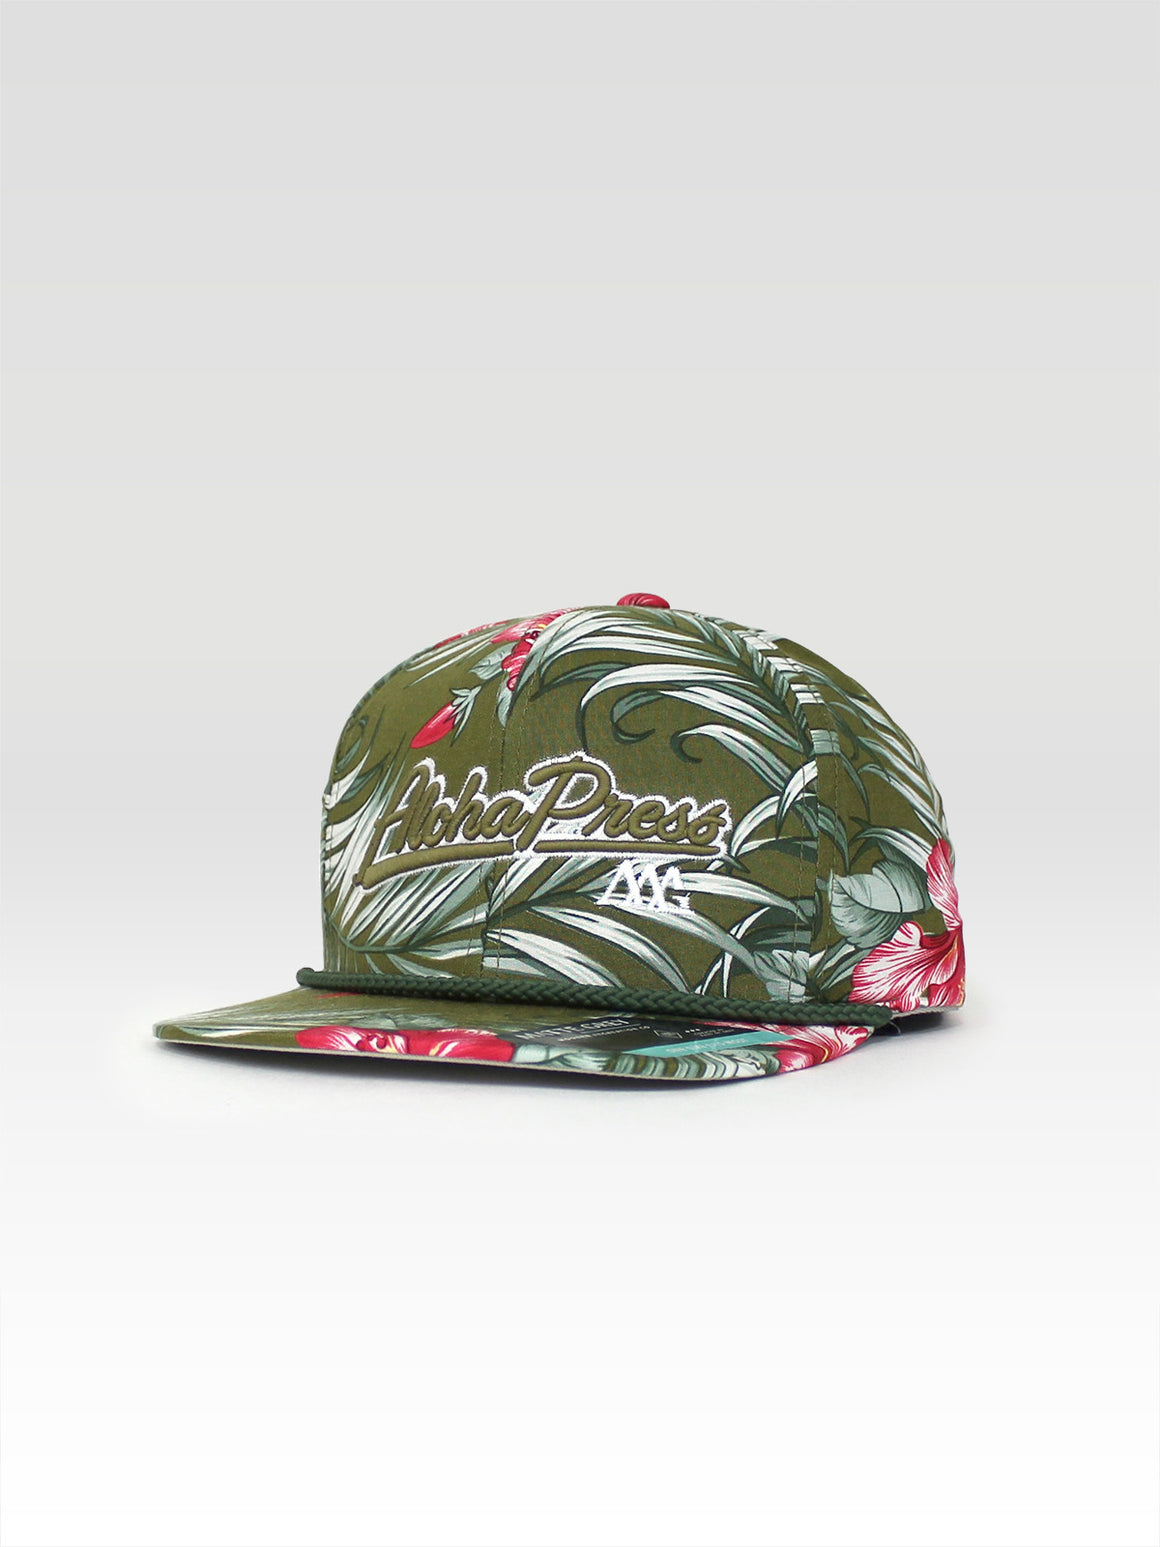 Aloha Press Strapback - Olive (Olive / White)